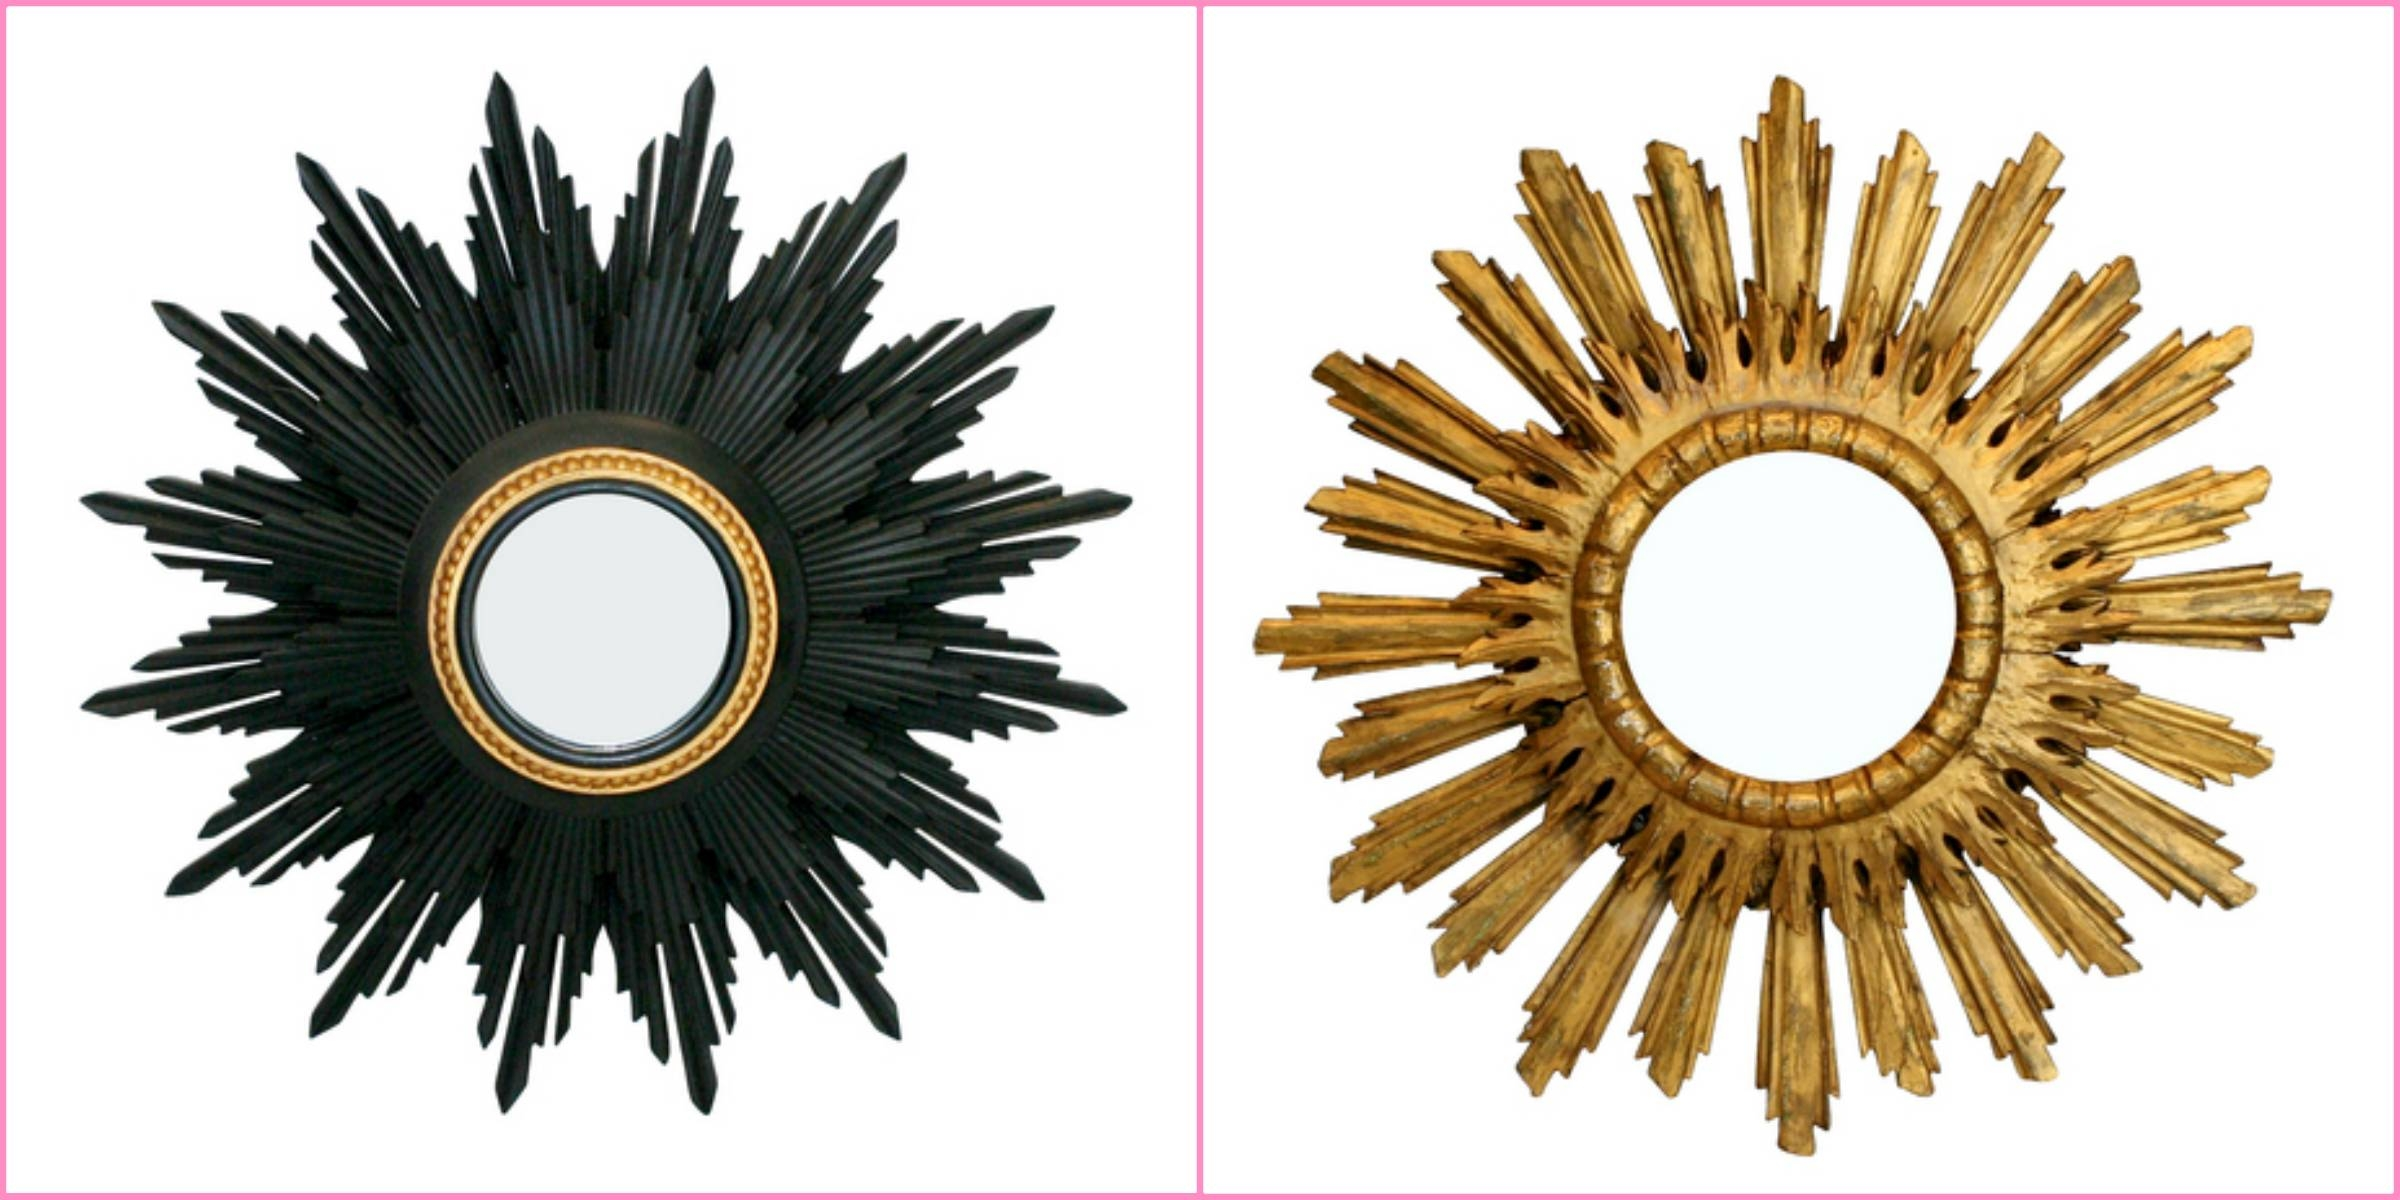 Decorating: Wooden Gold Sunburst Mirror For Wall Accessories Ideas intended for Black And Gold Wall Mirrors (Image 9 of 15)